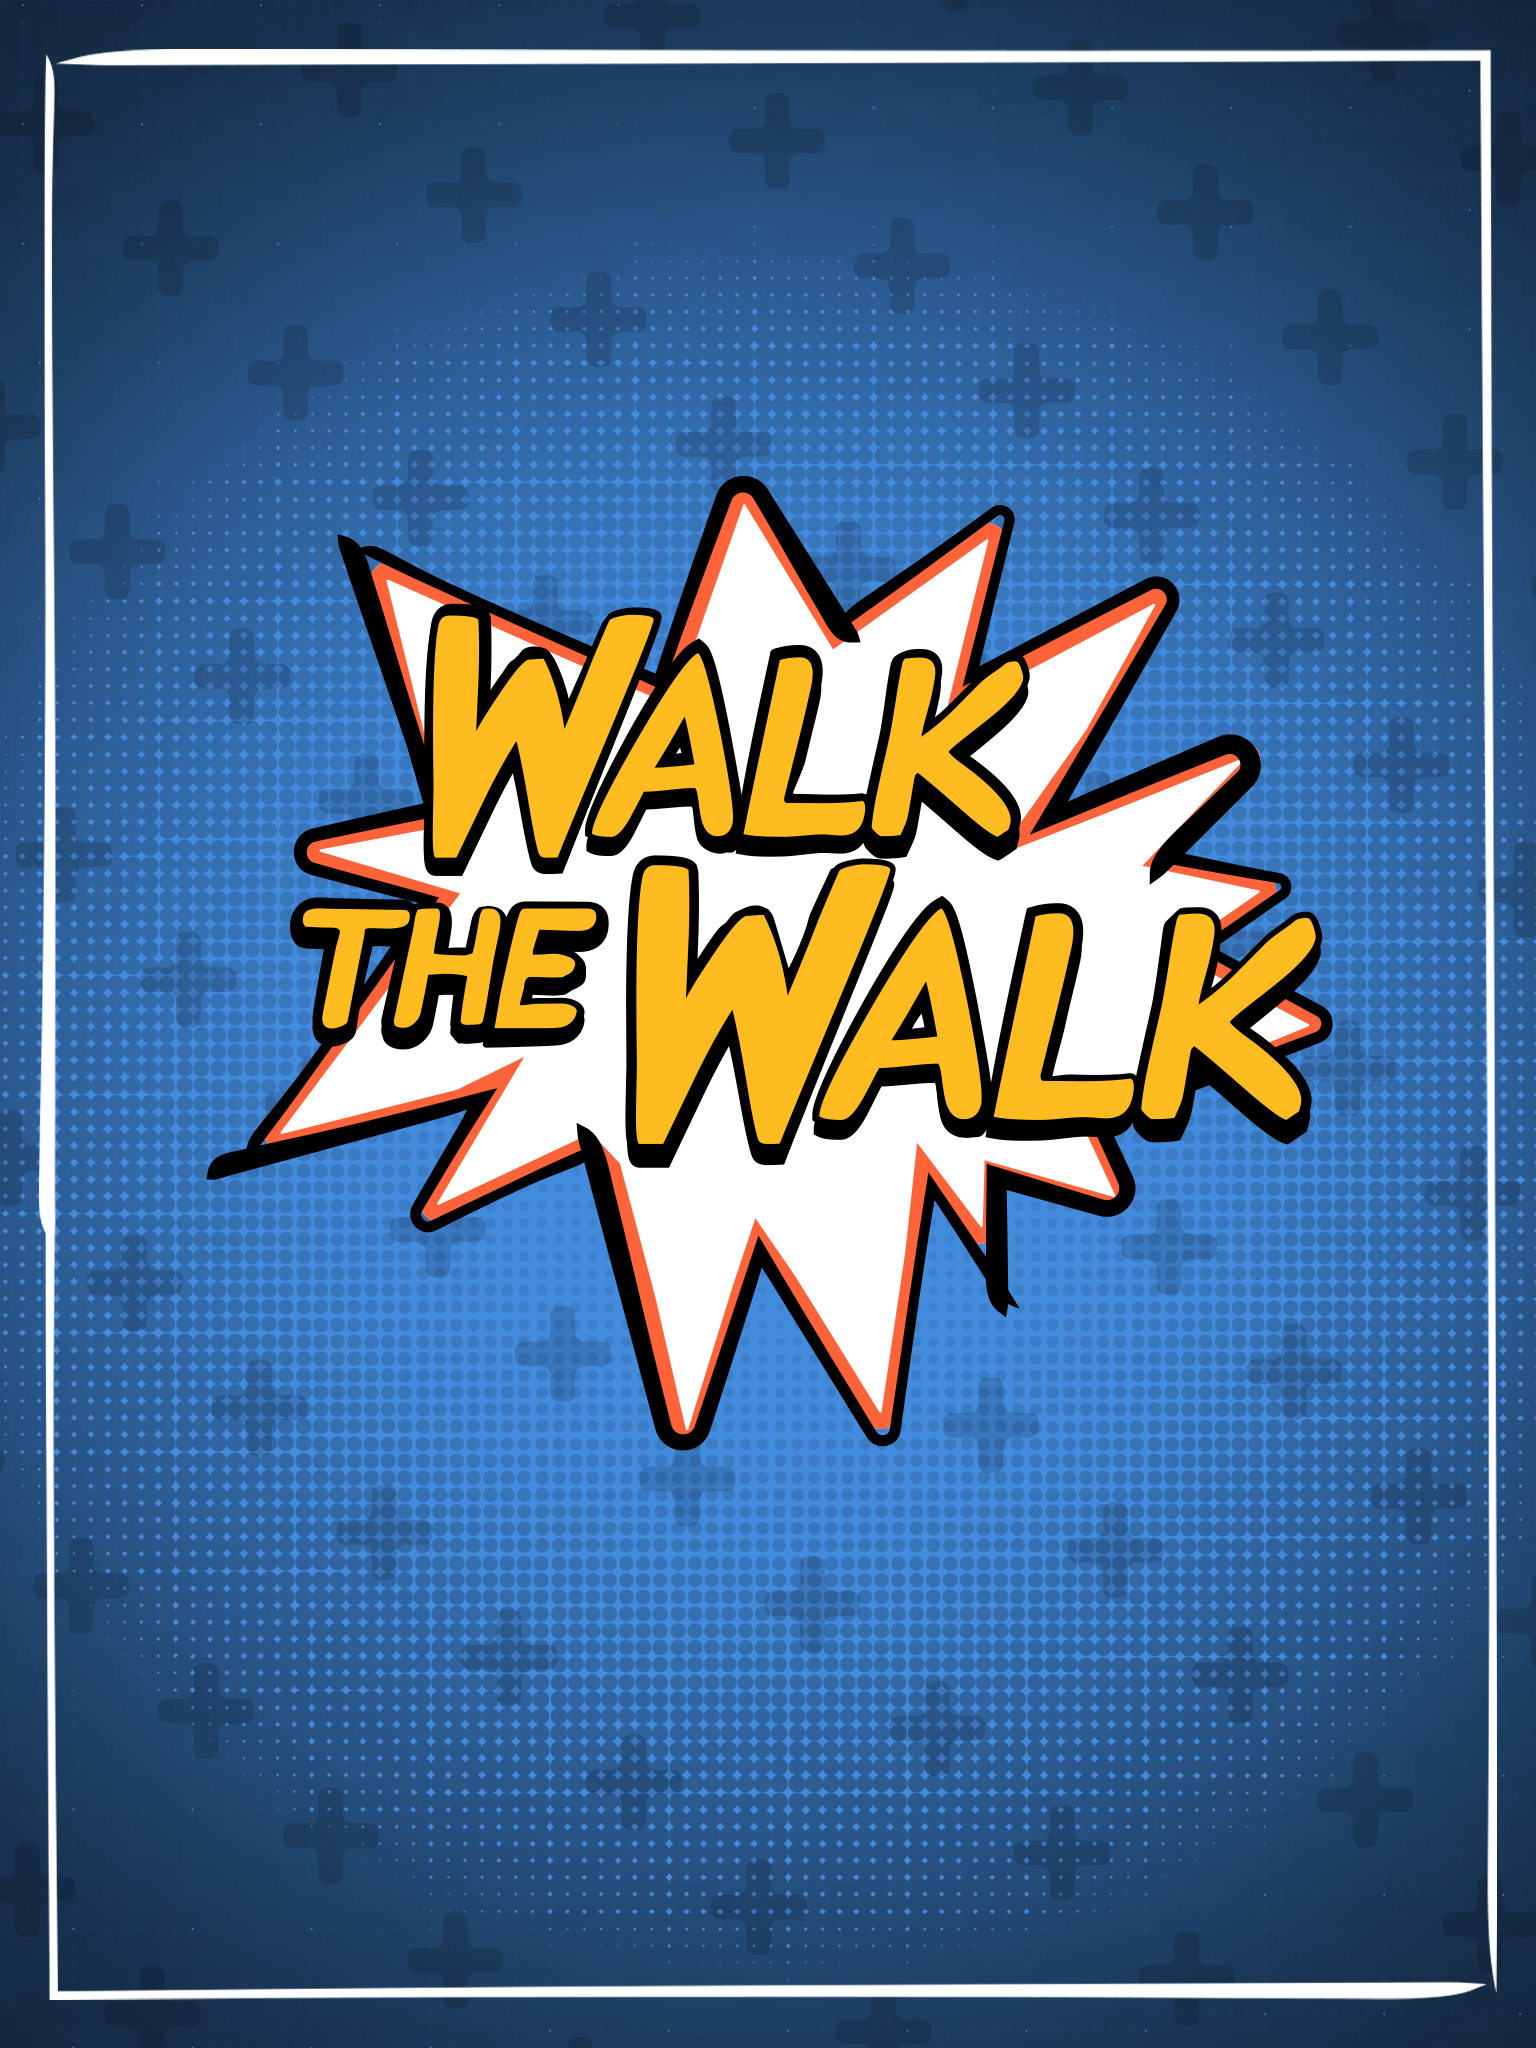 Walk The Walk - Walk the Walk is a game used in the Bio-Dash Wellbeing Program run by the Centre for Positive Psychology at the University of Melbourne, headed by Professor Dianne Vella-Brodrick and her research team.